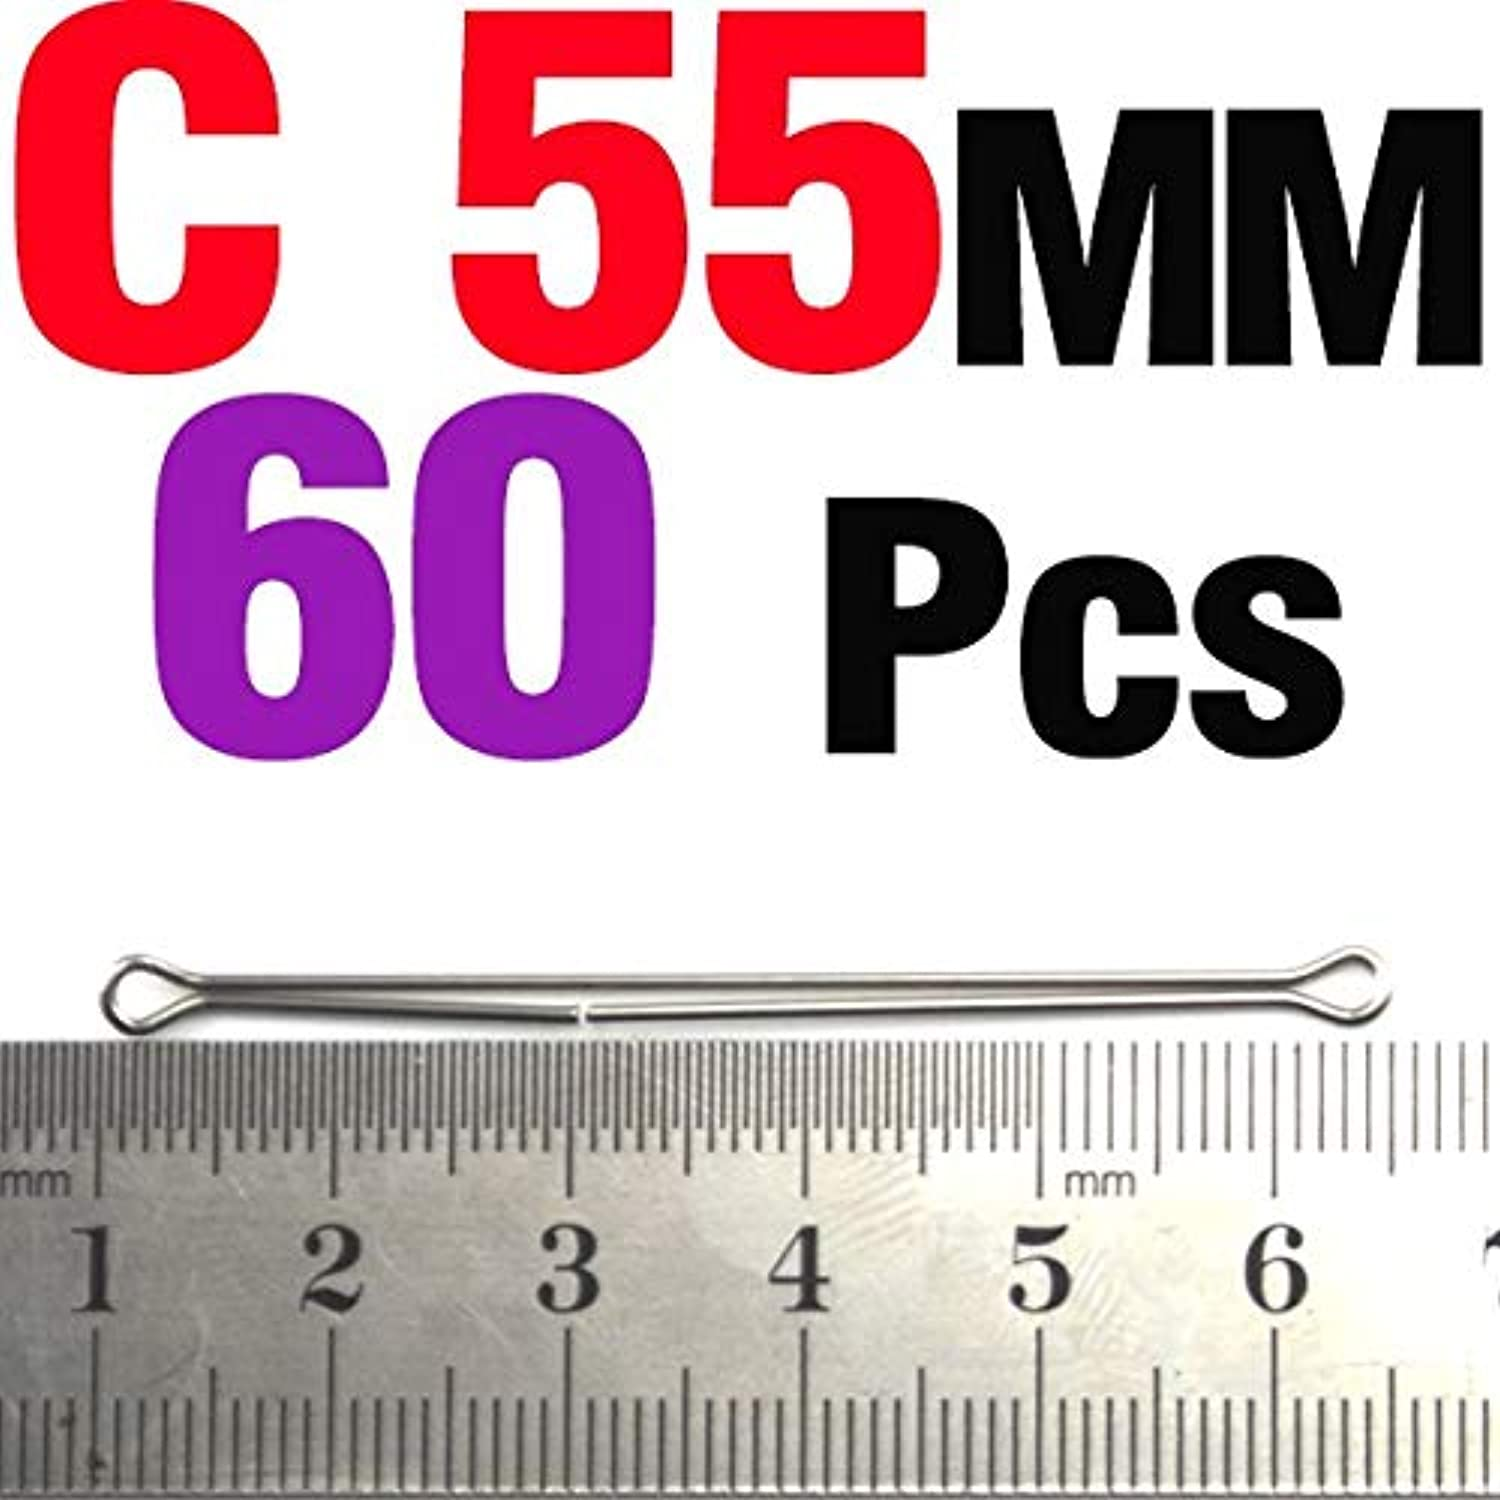 Generic MNFT 60PCS Double Eye Wire Articulated Shanks Fly Tying Material 3 Styles 15 20 25 35 45 55mm Optional 60Pcs C 55mm